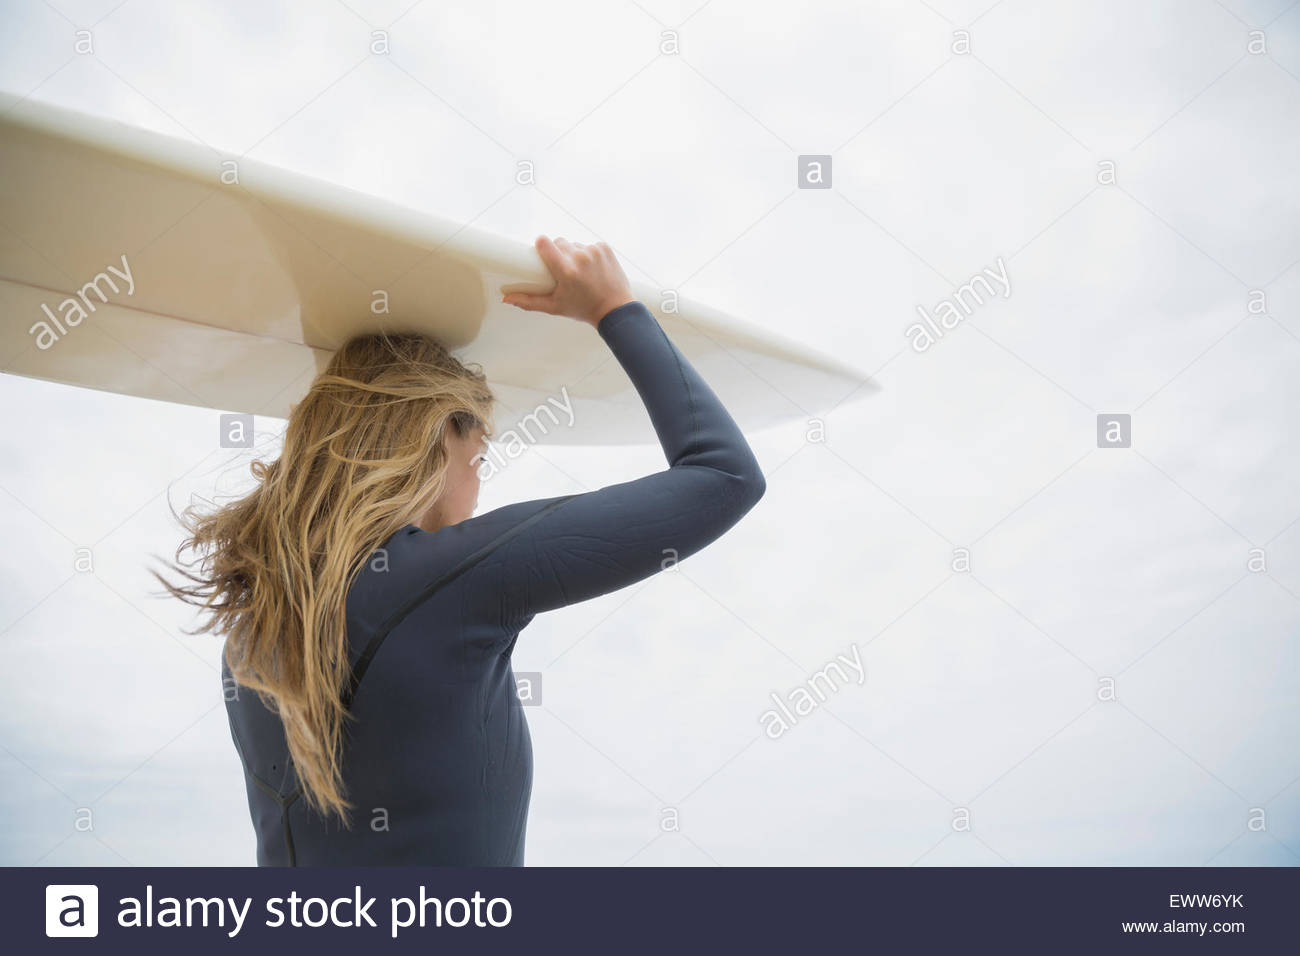 Blonde female surfer carrying surfboard overhead - Stock Image